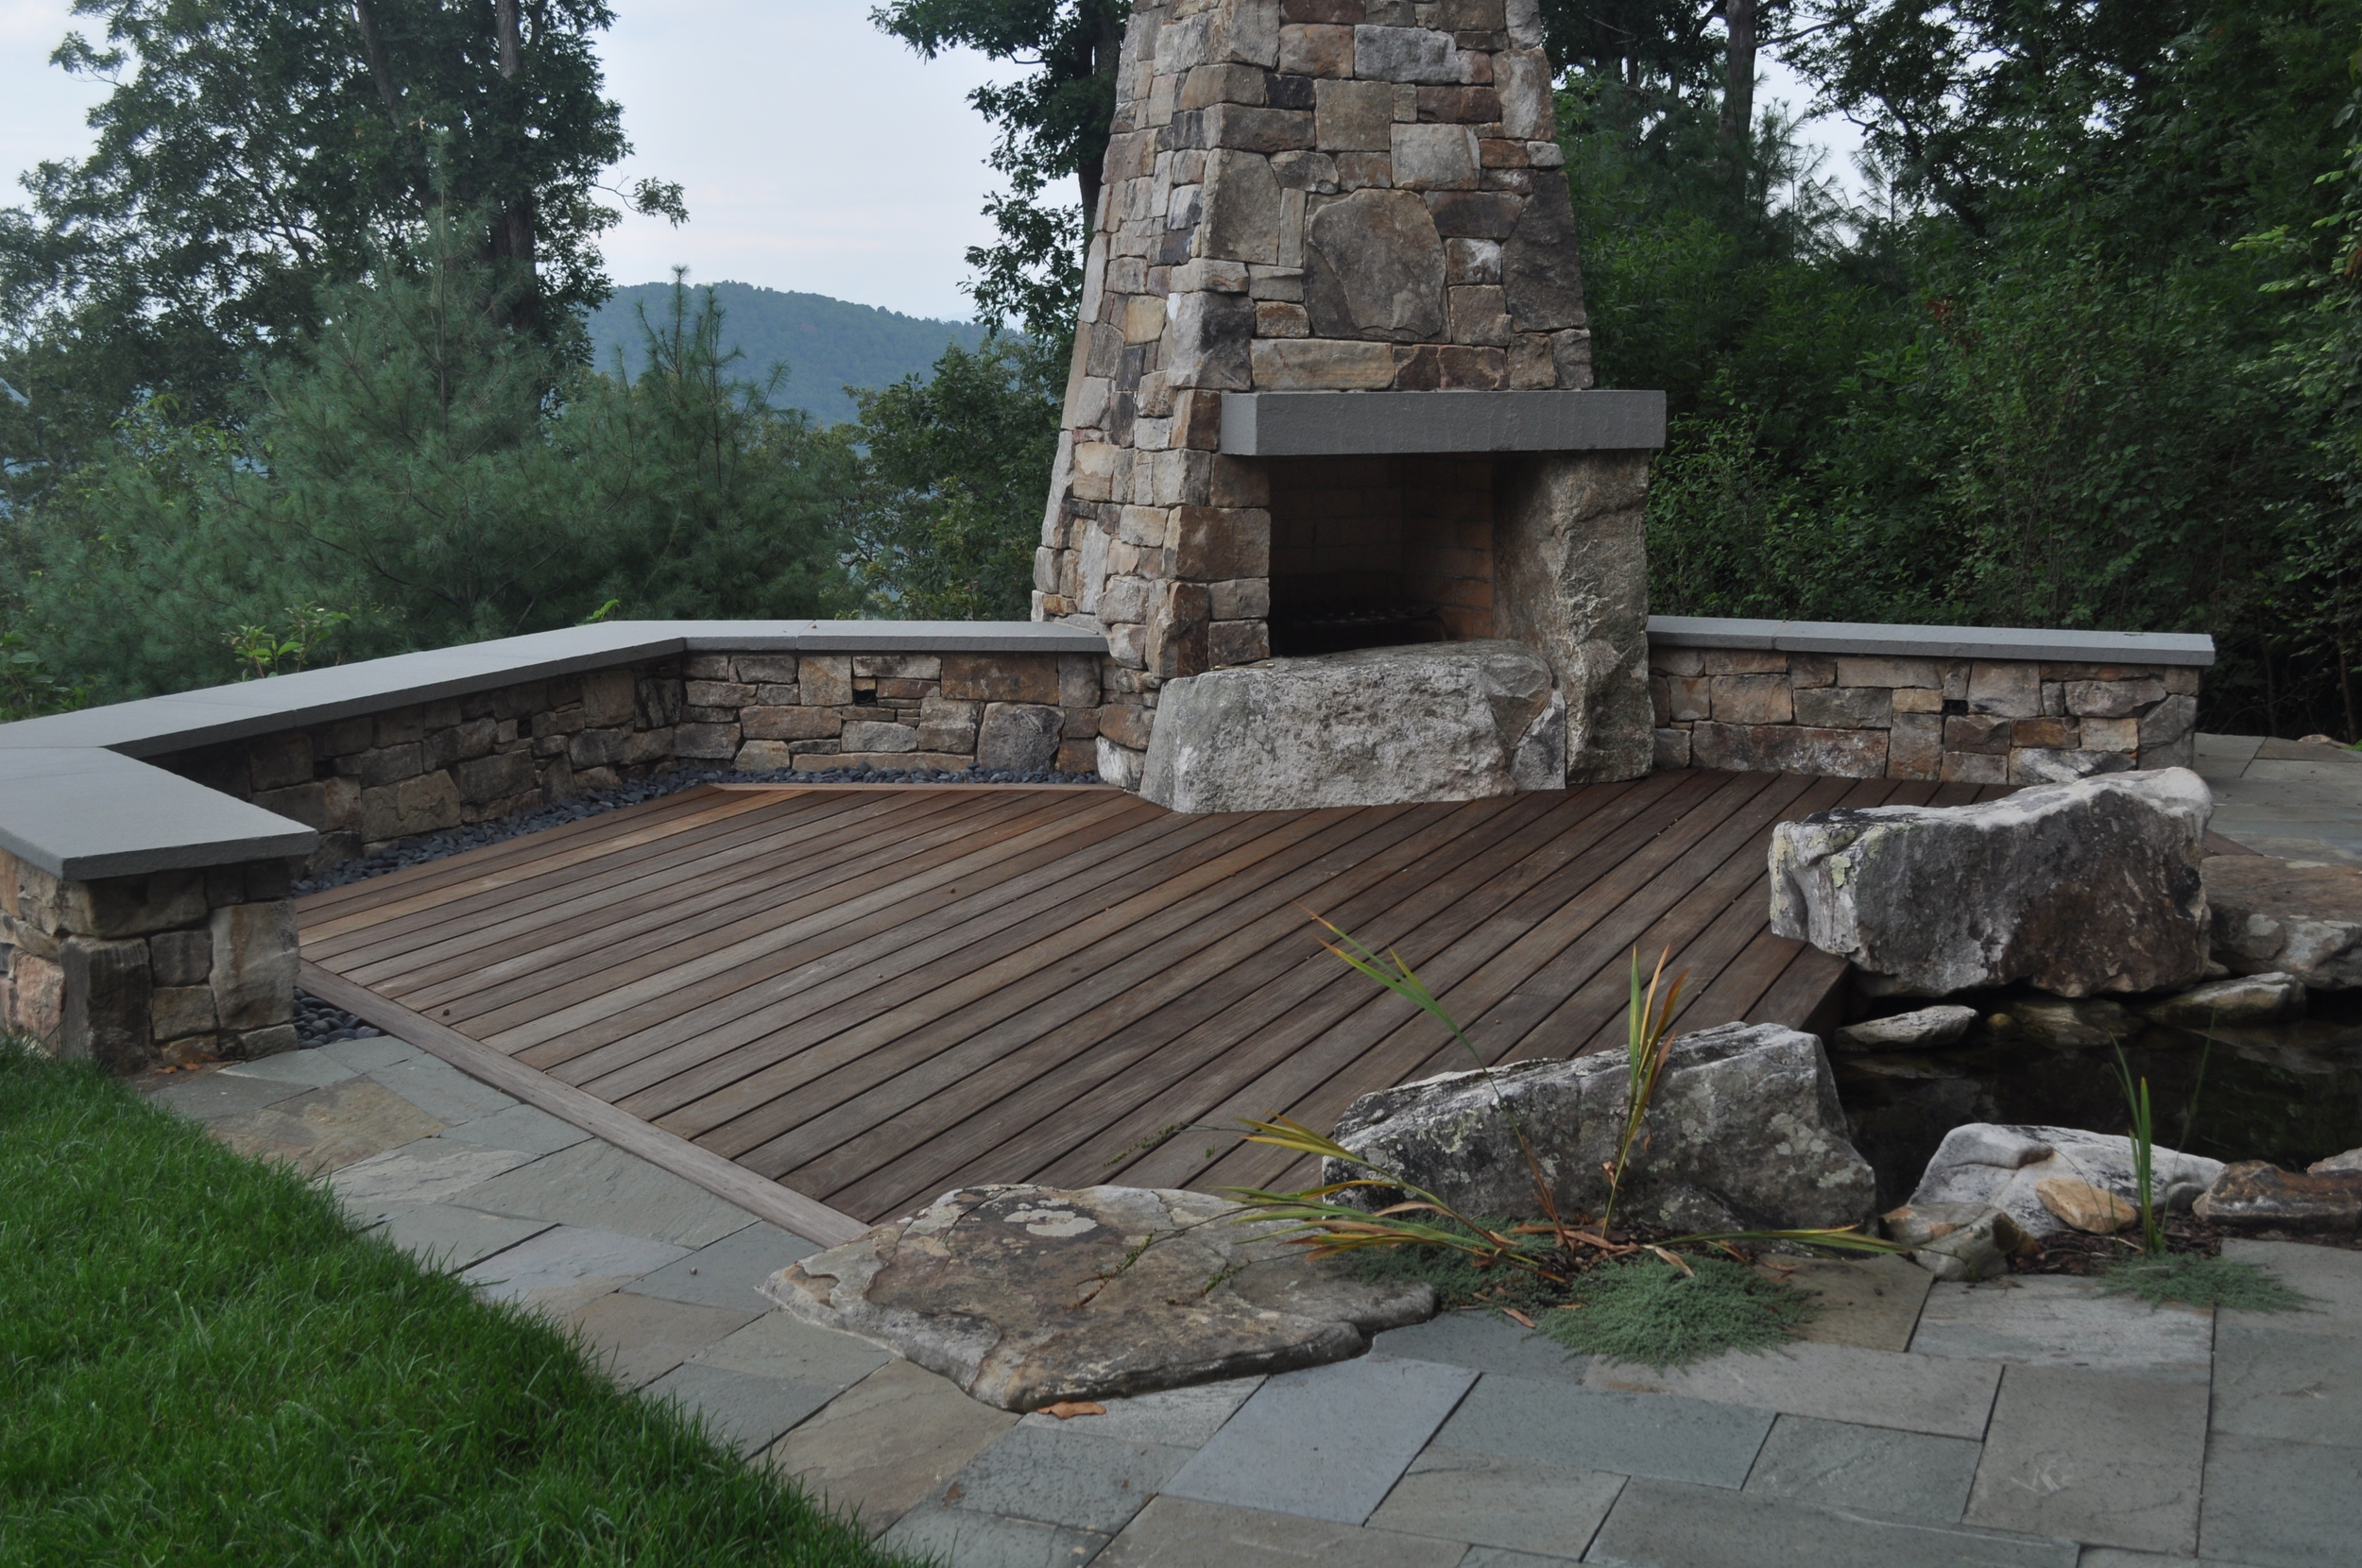 Boone/Jamison Residence, Lower Deck by outdoor fire place and pond.